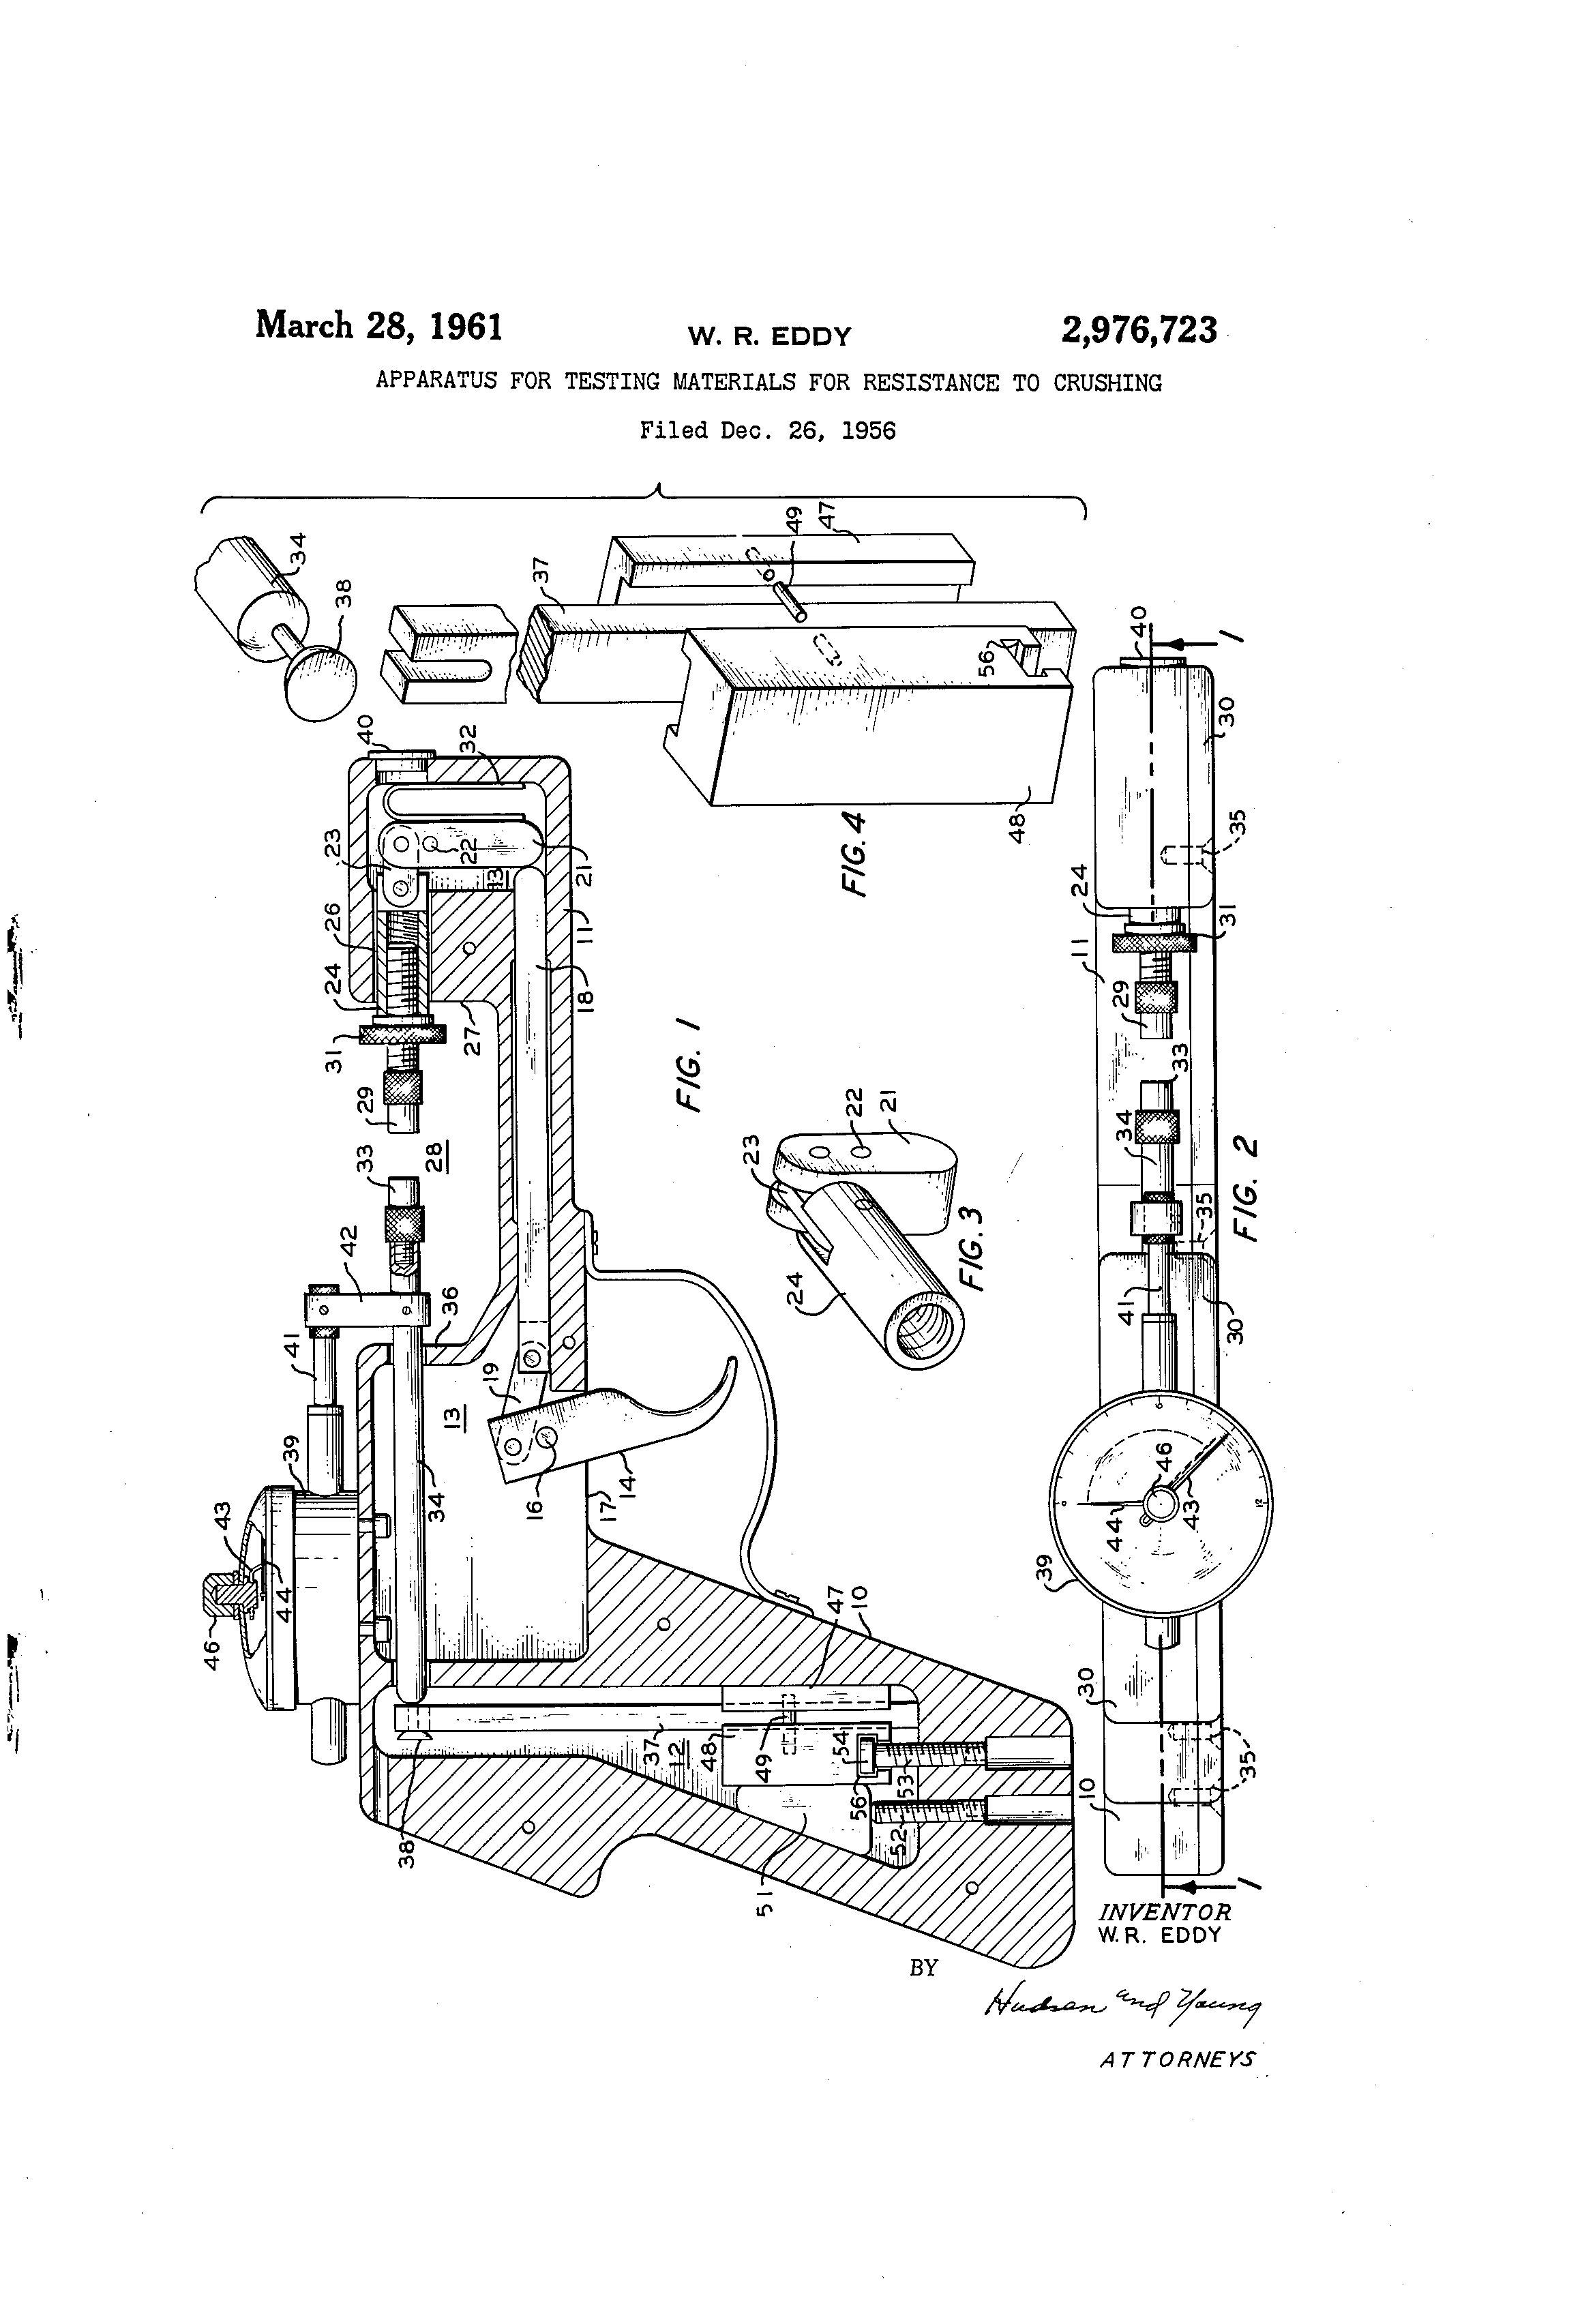 Resistance Tester Through Materials : Patent us apparatus for testing materials